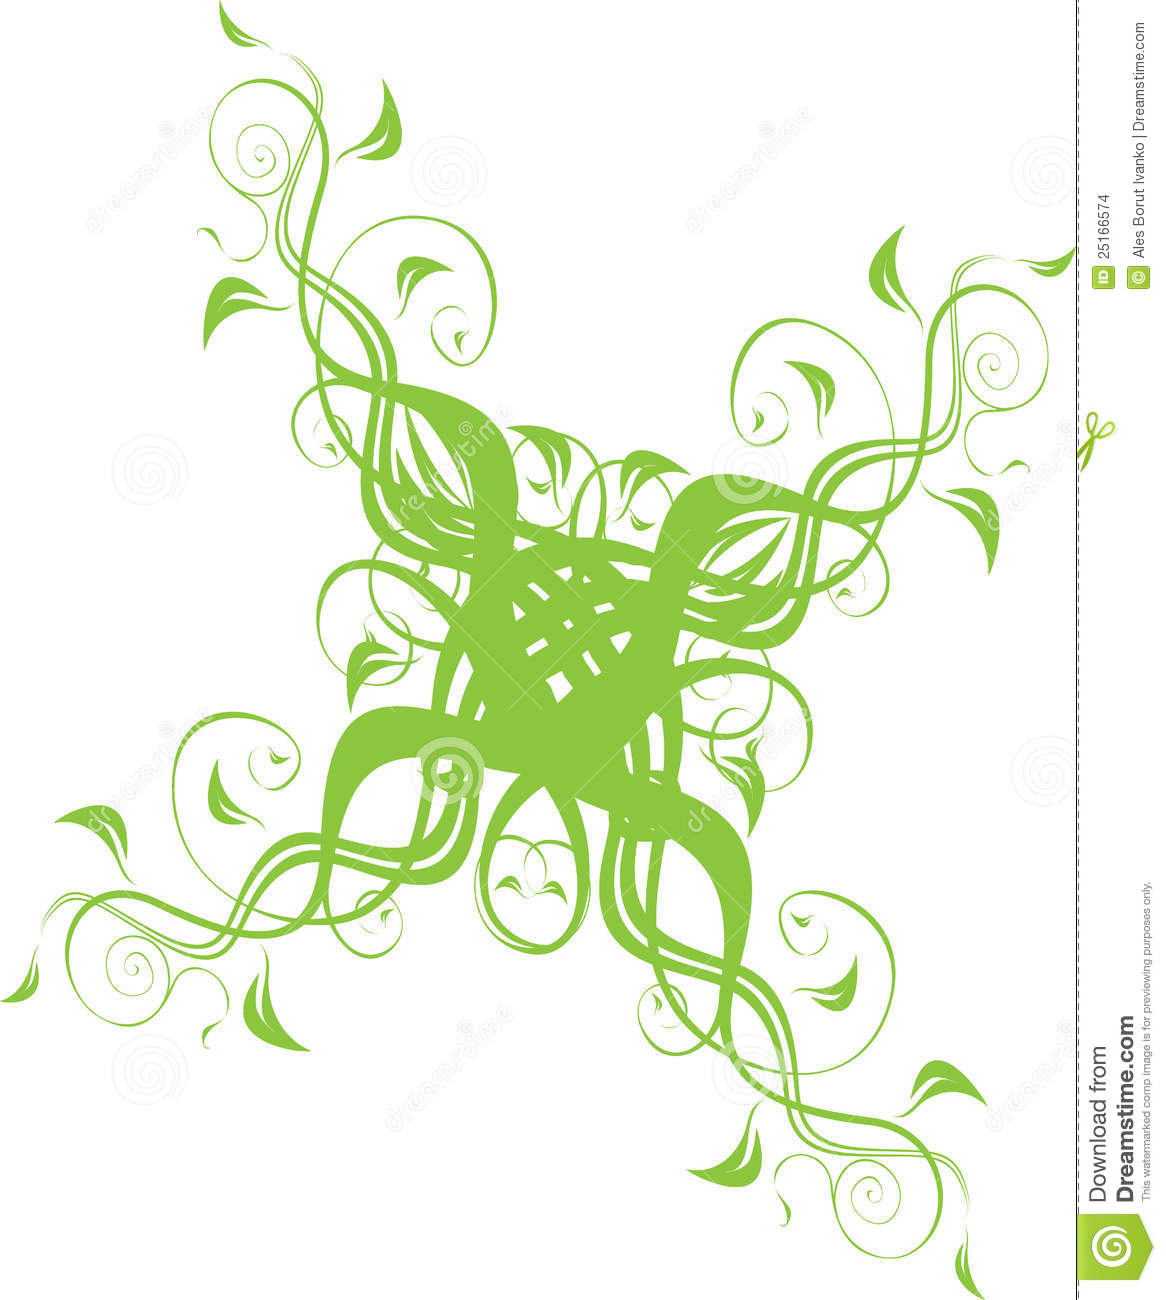 Floral ornament in green